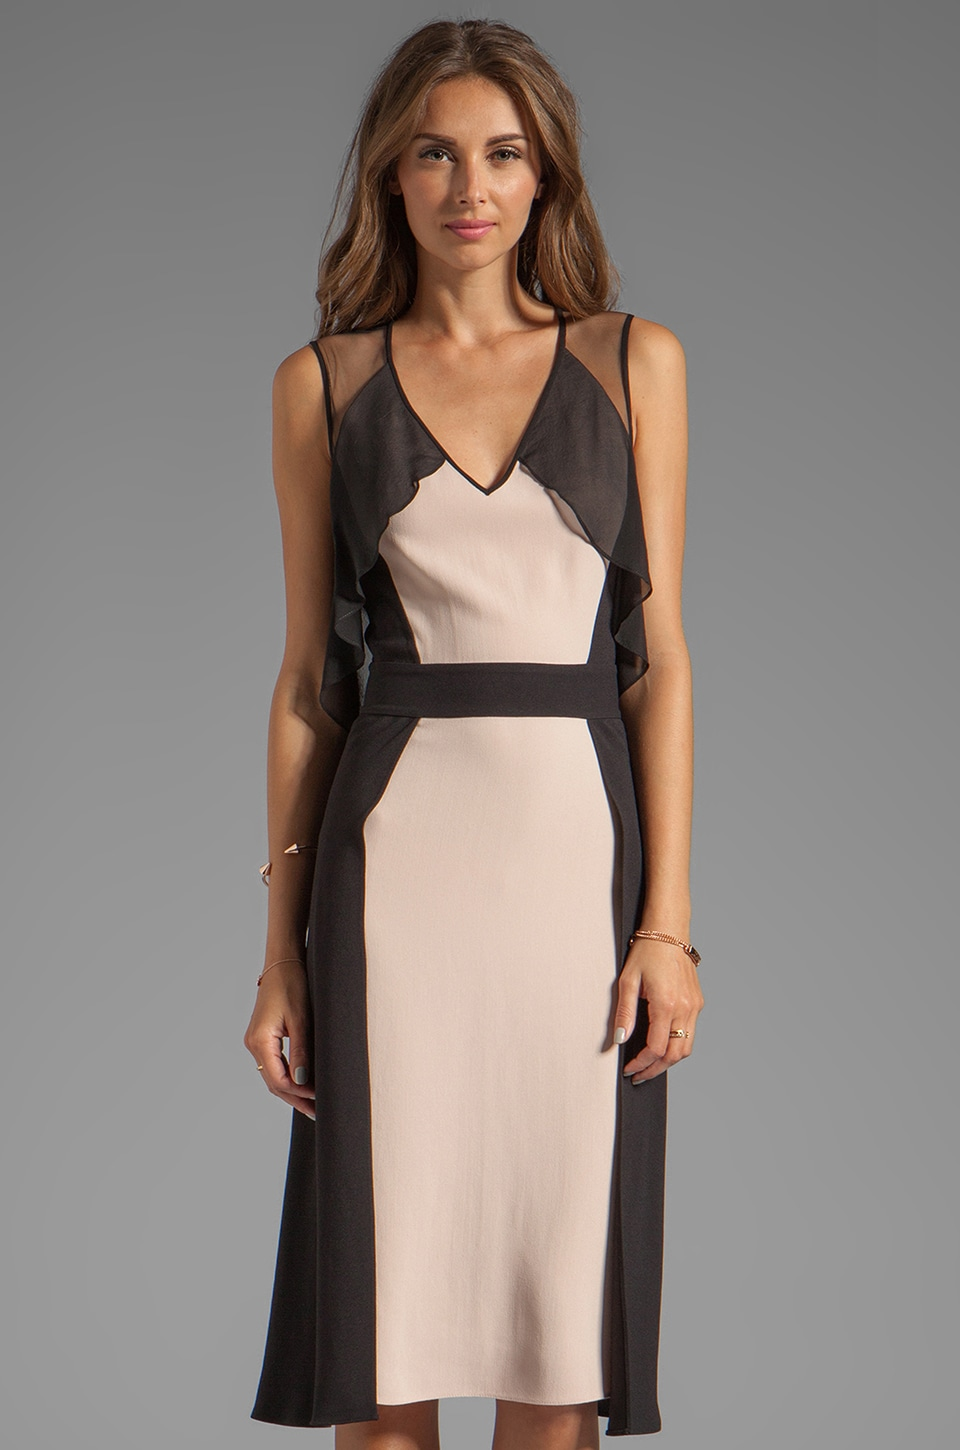 BCBGMAXAZRIA Combo Dress in Bare Pink